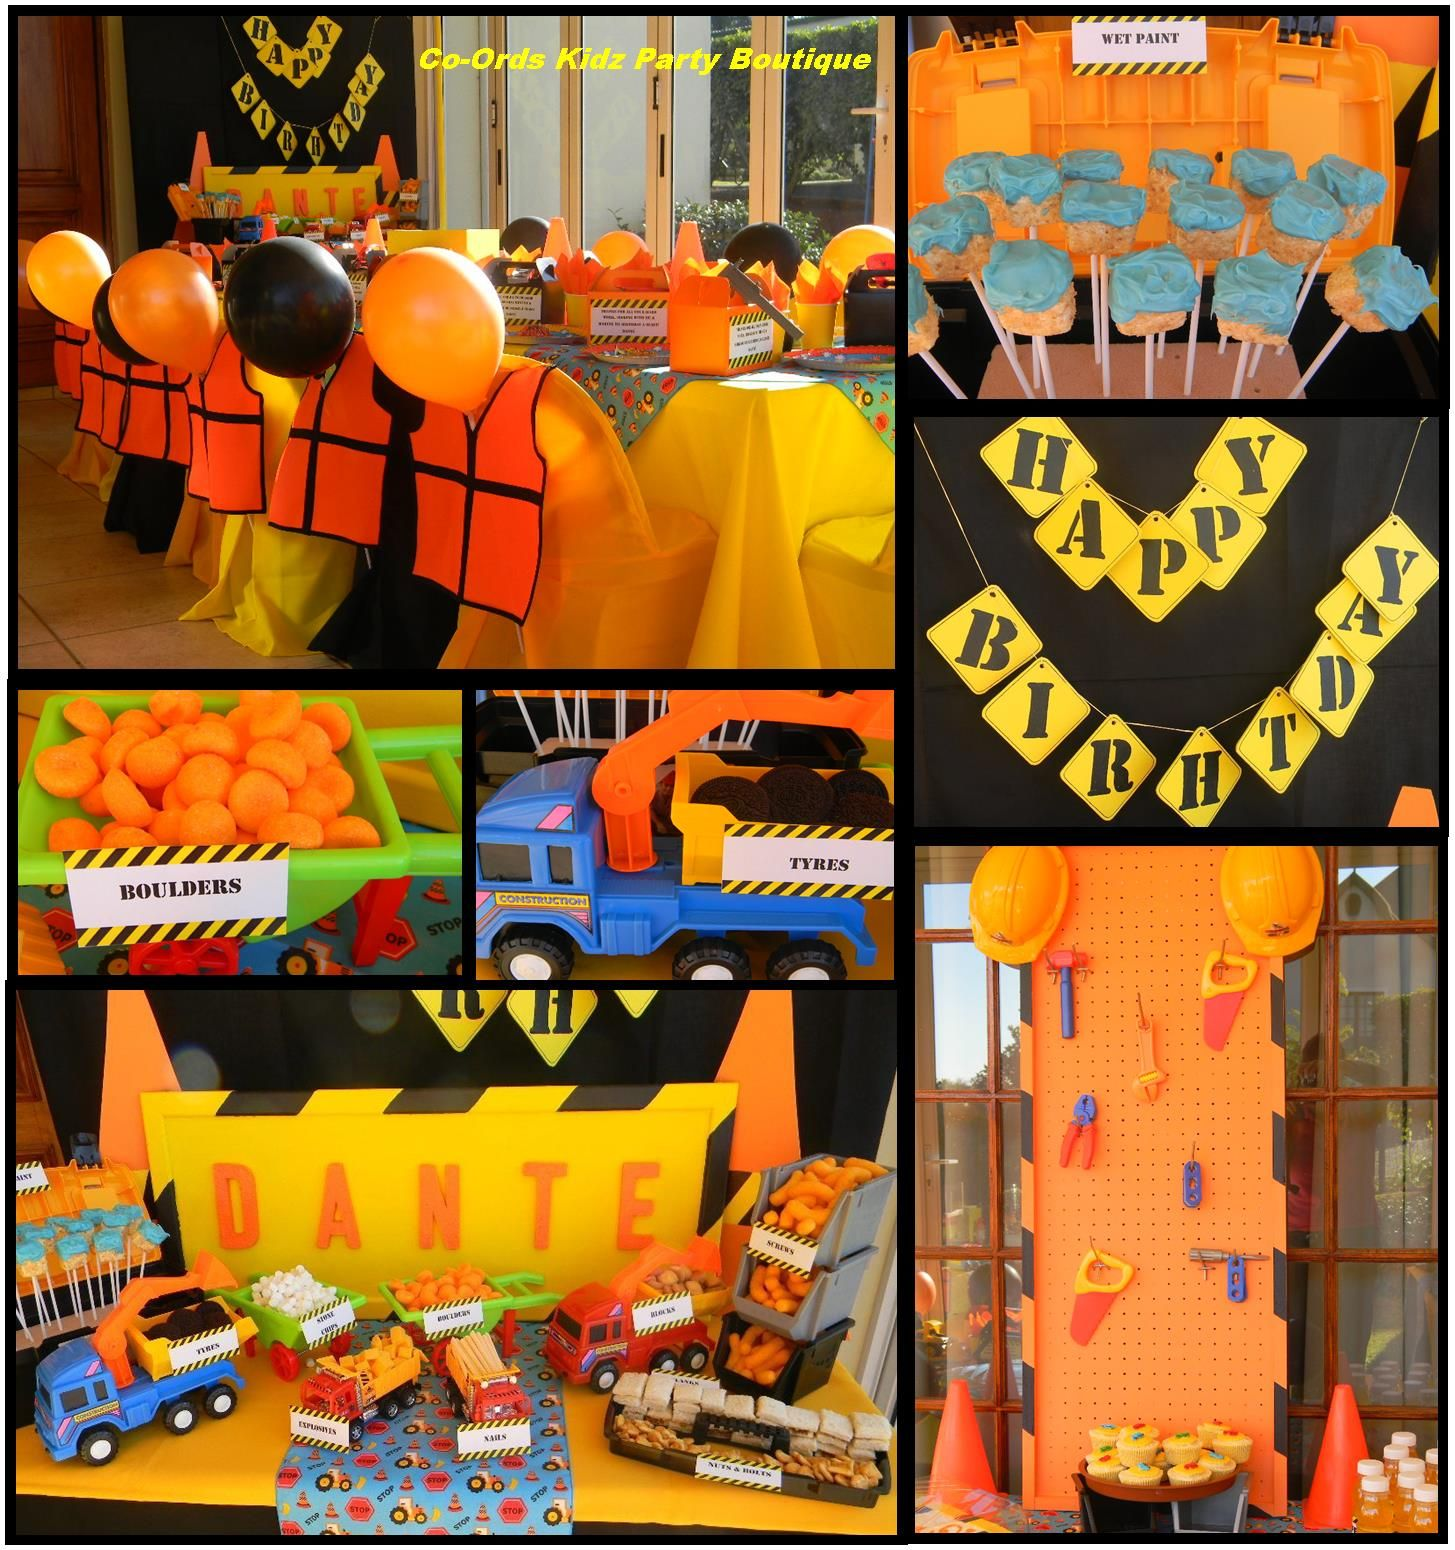 Construction Birthday Party Food Ideas: Construction Themed Kiddies Party & Candy Table By Co-Ords